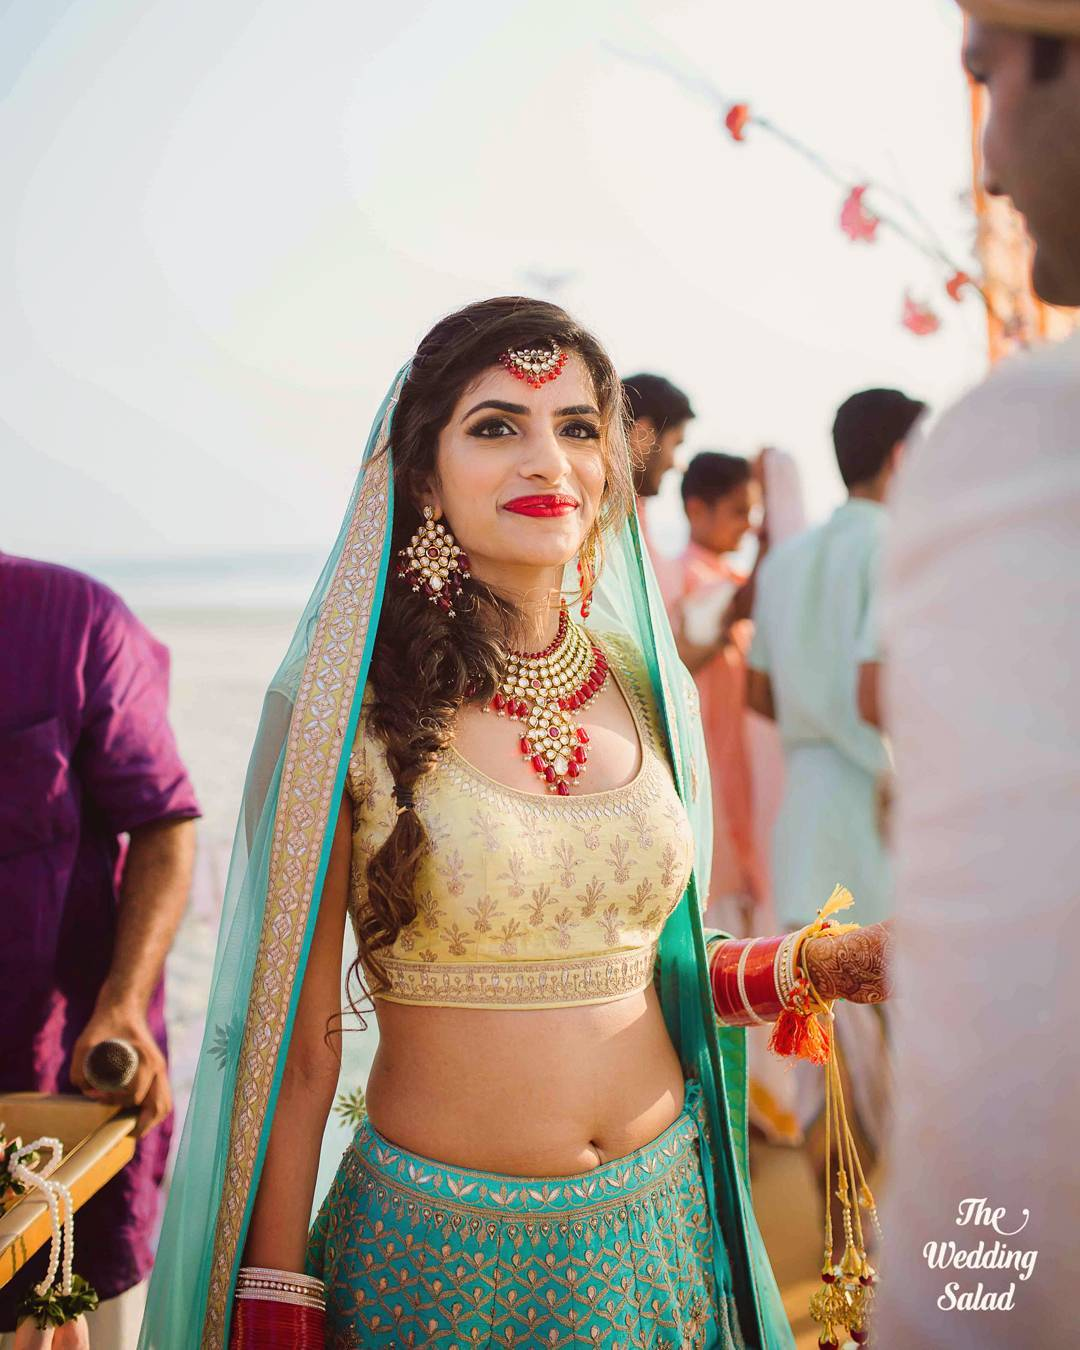 Turquoise lehenga with gota leaf work and golder top and contrasting red jewelry | 11 Unique Lehenga Hues That Will Make You Ditch The Usual Red | FunctionMania